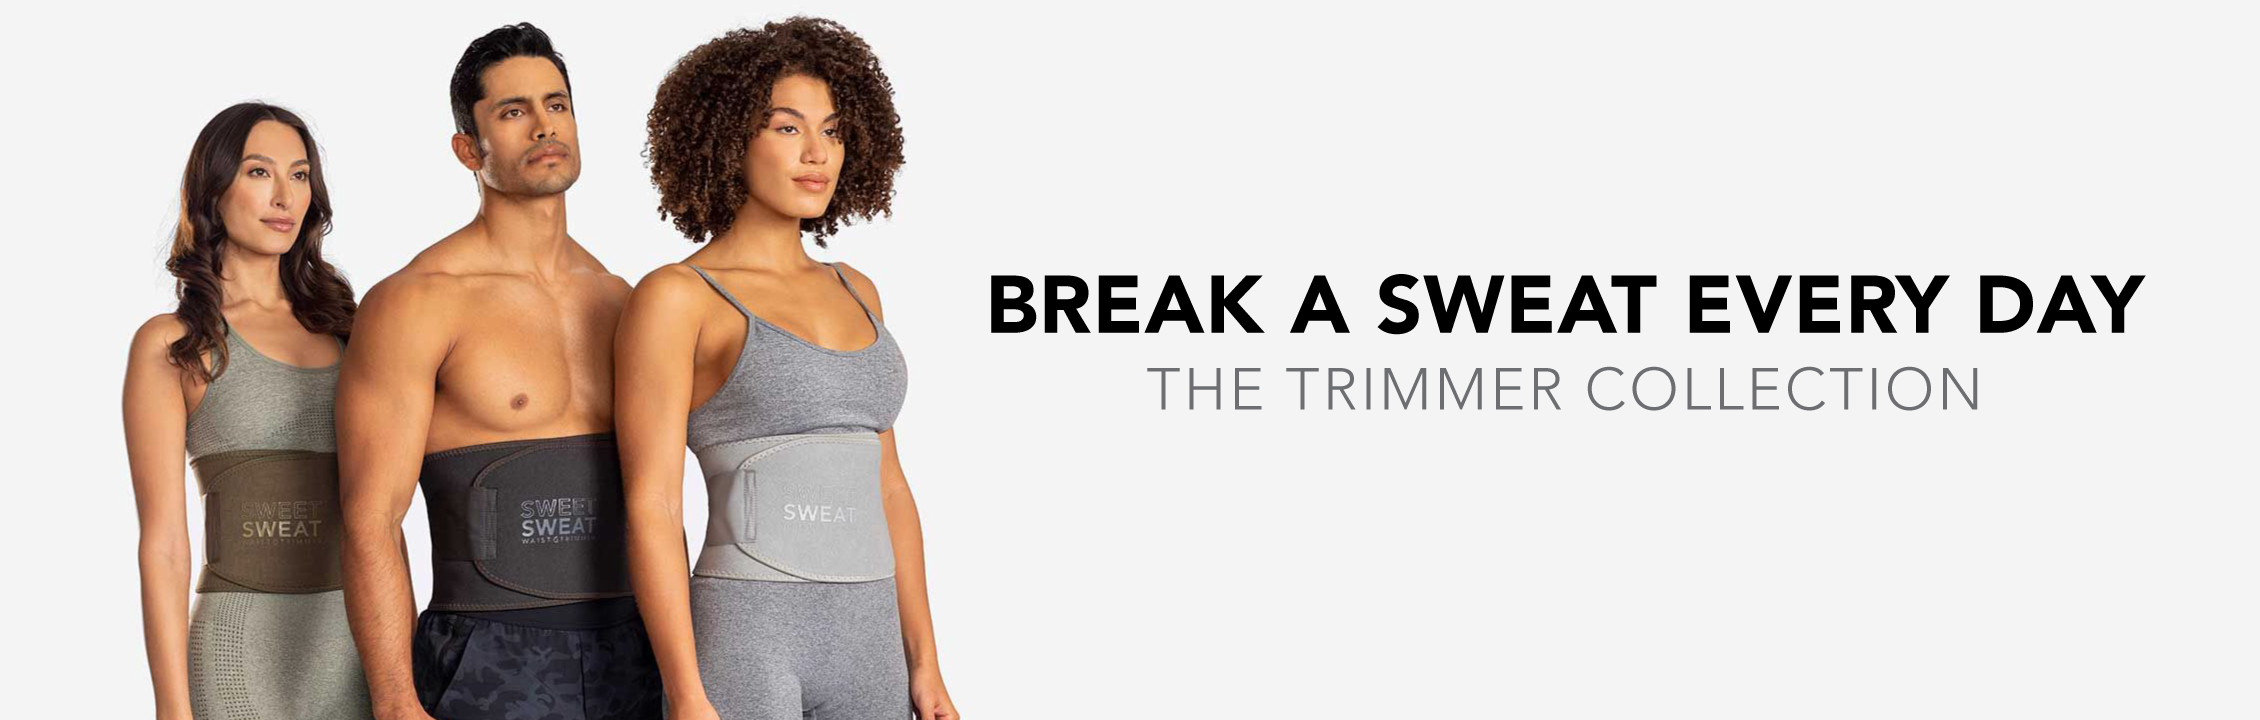 Sweet Sweat Trimmer Collection